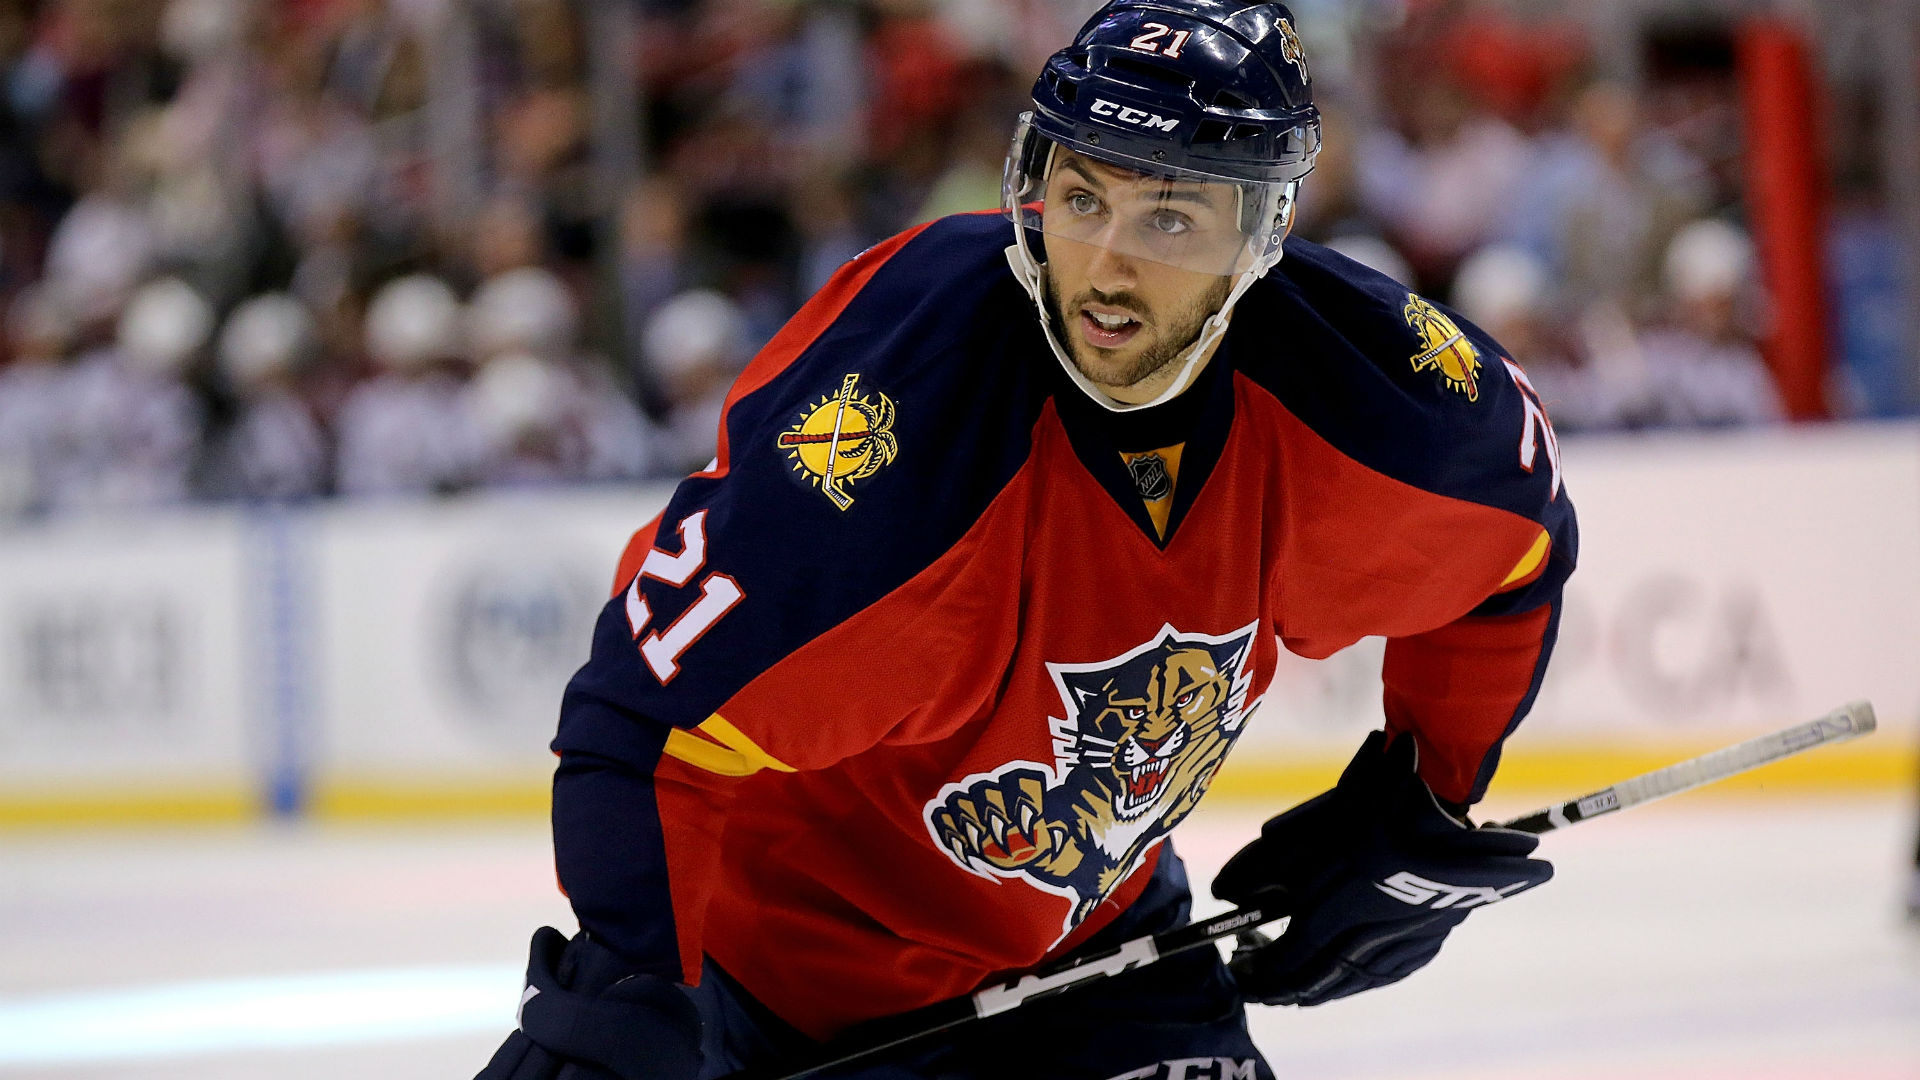 Vincent Trocheck injury update: Panthers F has surgery on broken ankle, out indefinitely